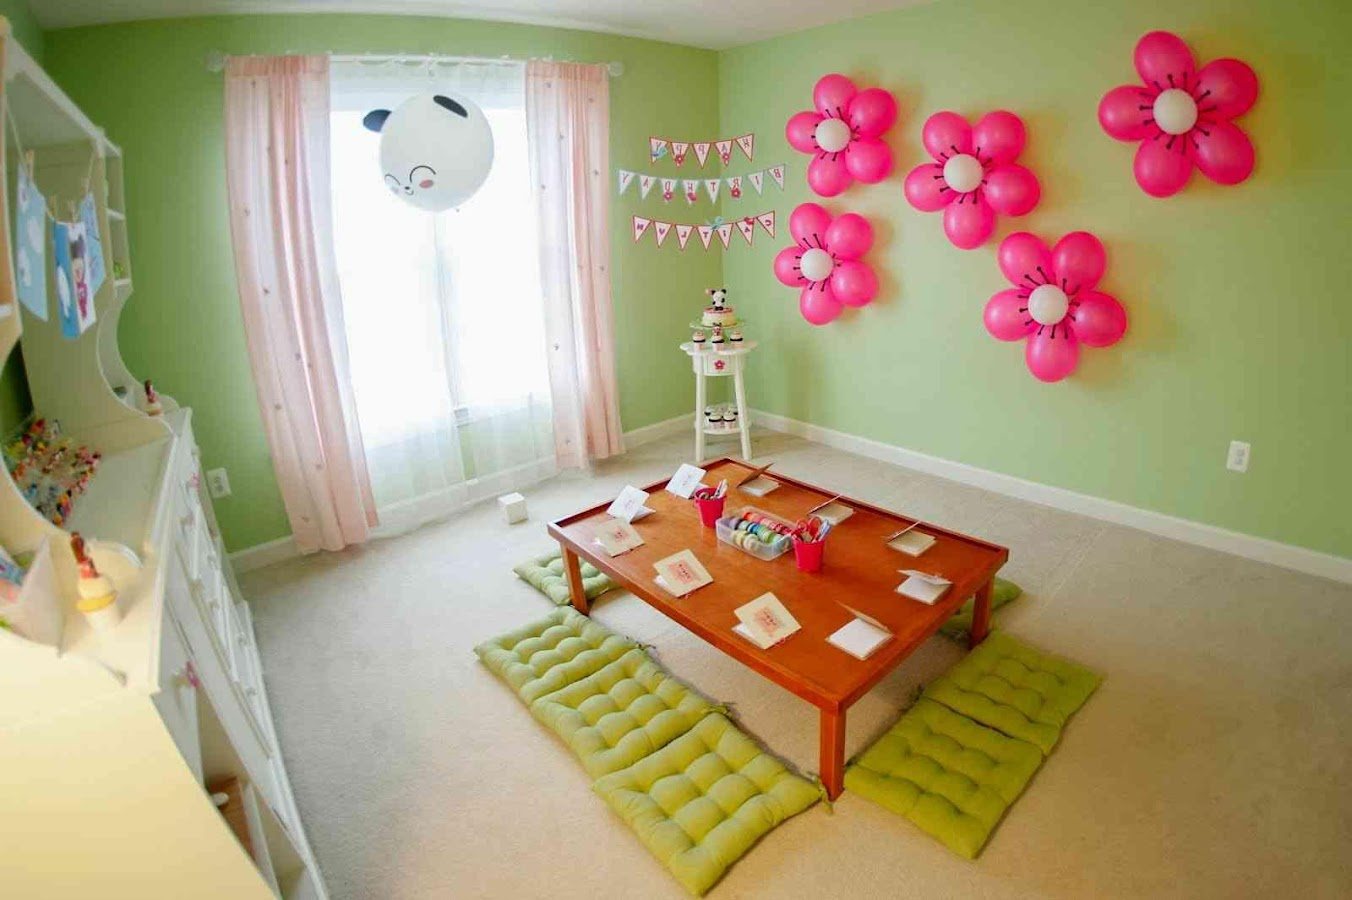 Home birthday decoration android apps on google play for Home decorations for birthday party